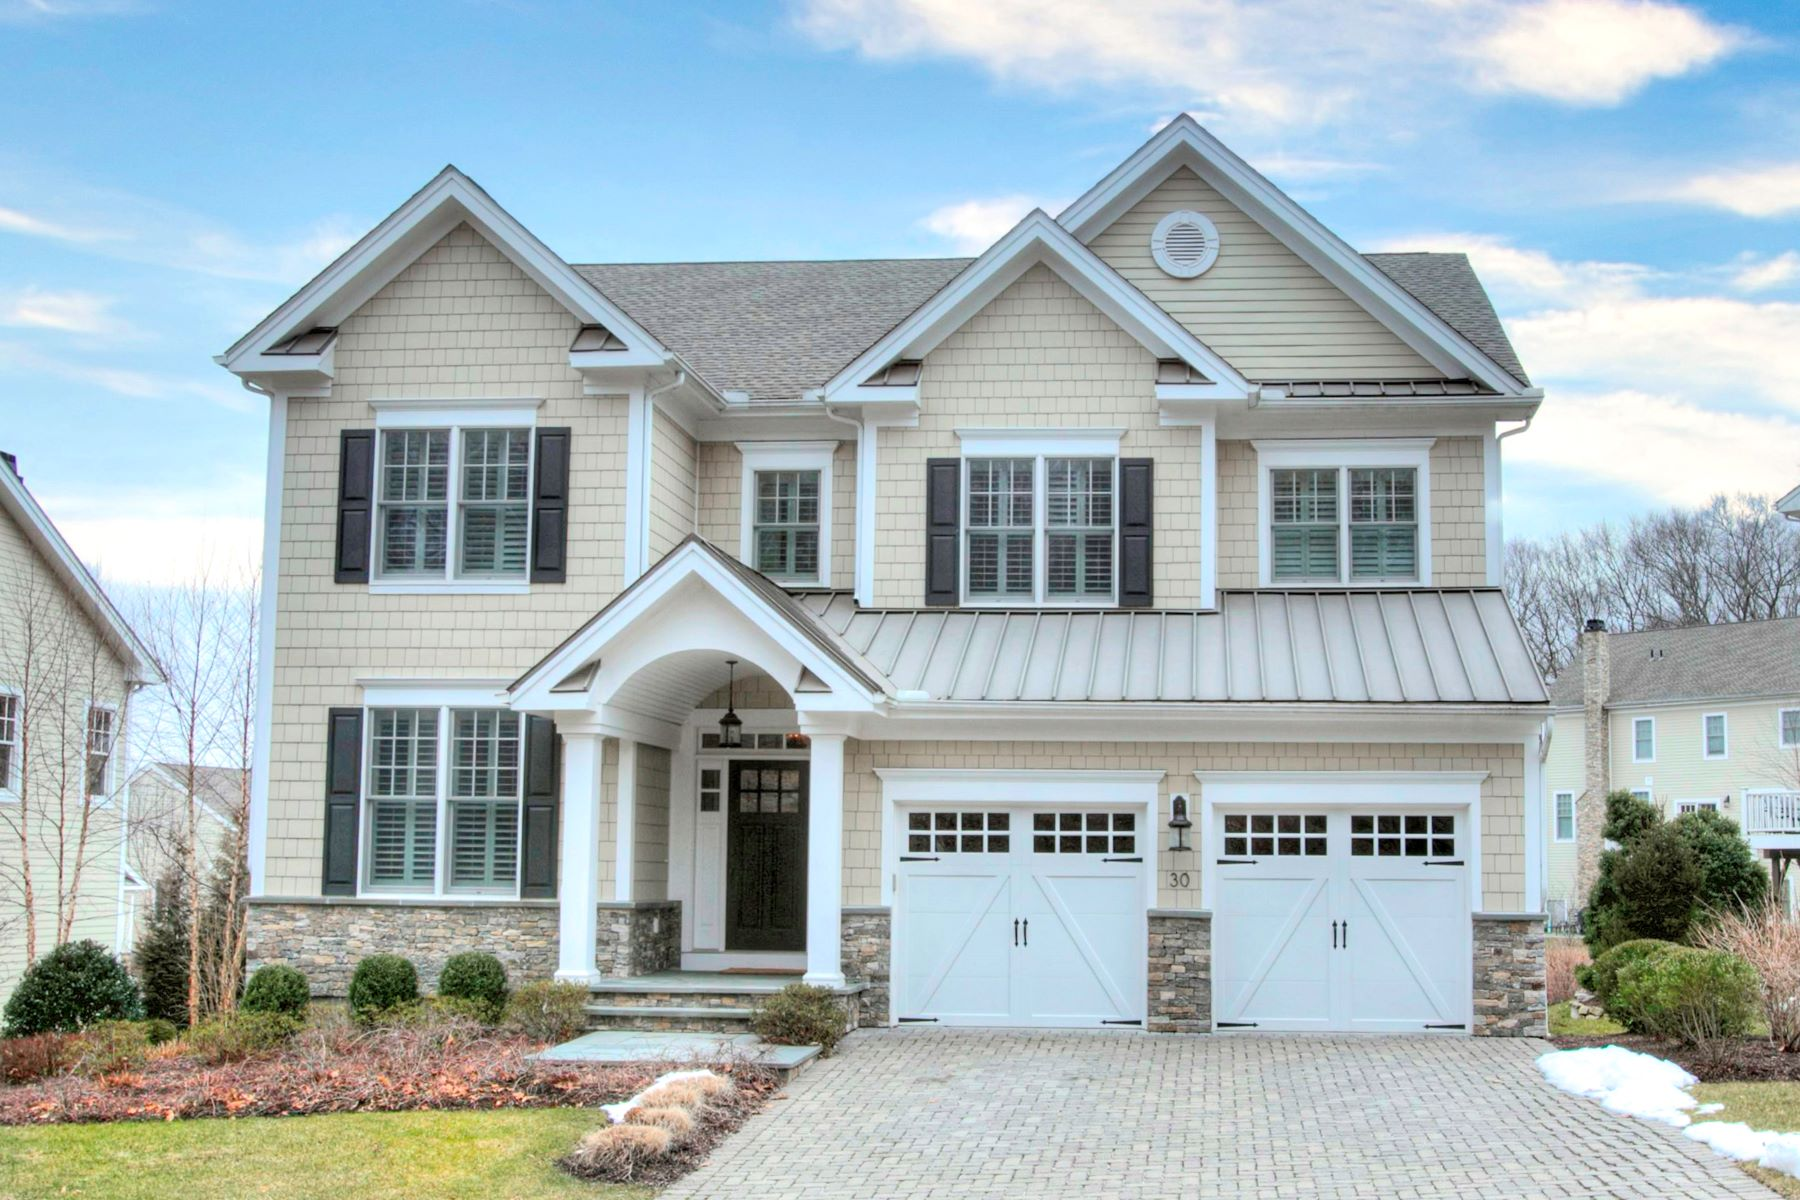 Single Family Homes for Active at 30 River Ridge Lane Wilton, Connecticut 06897 United States